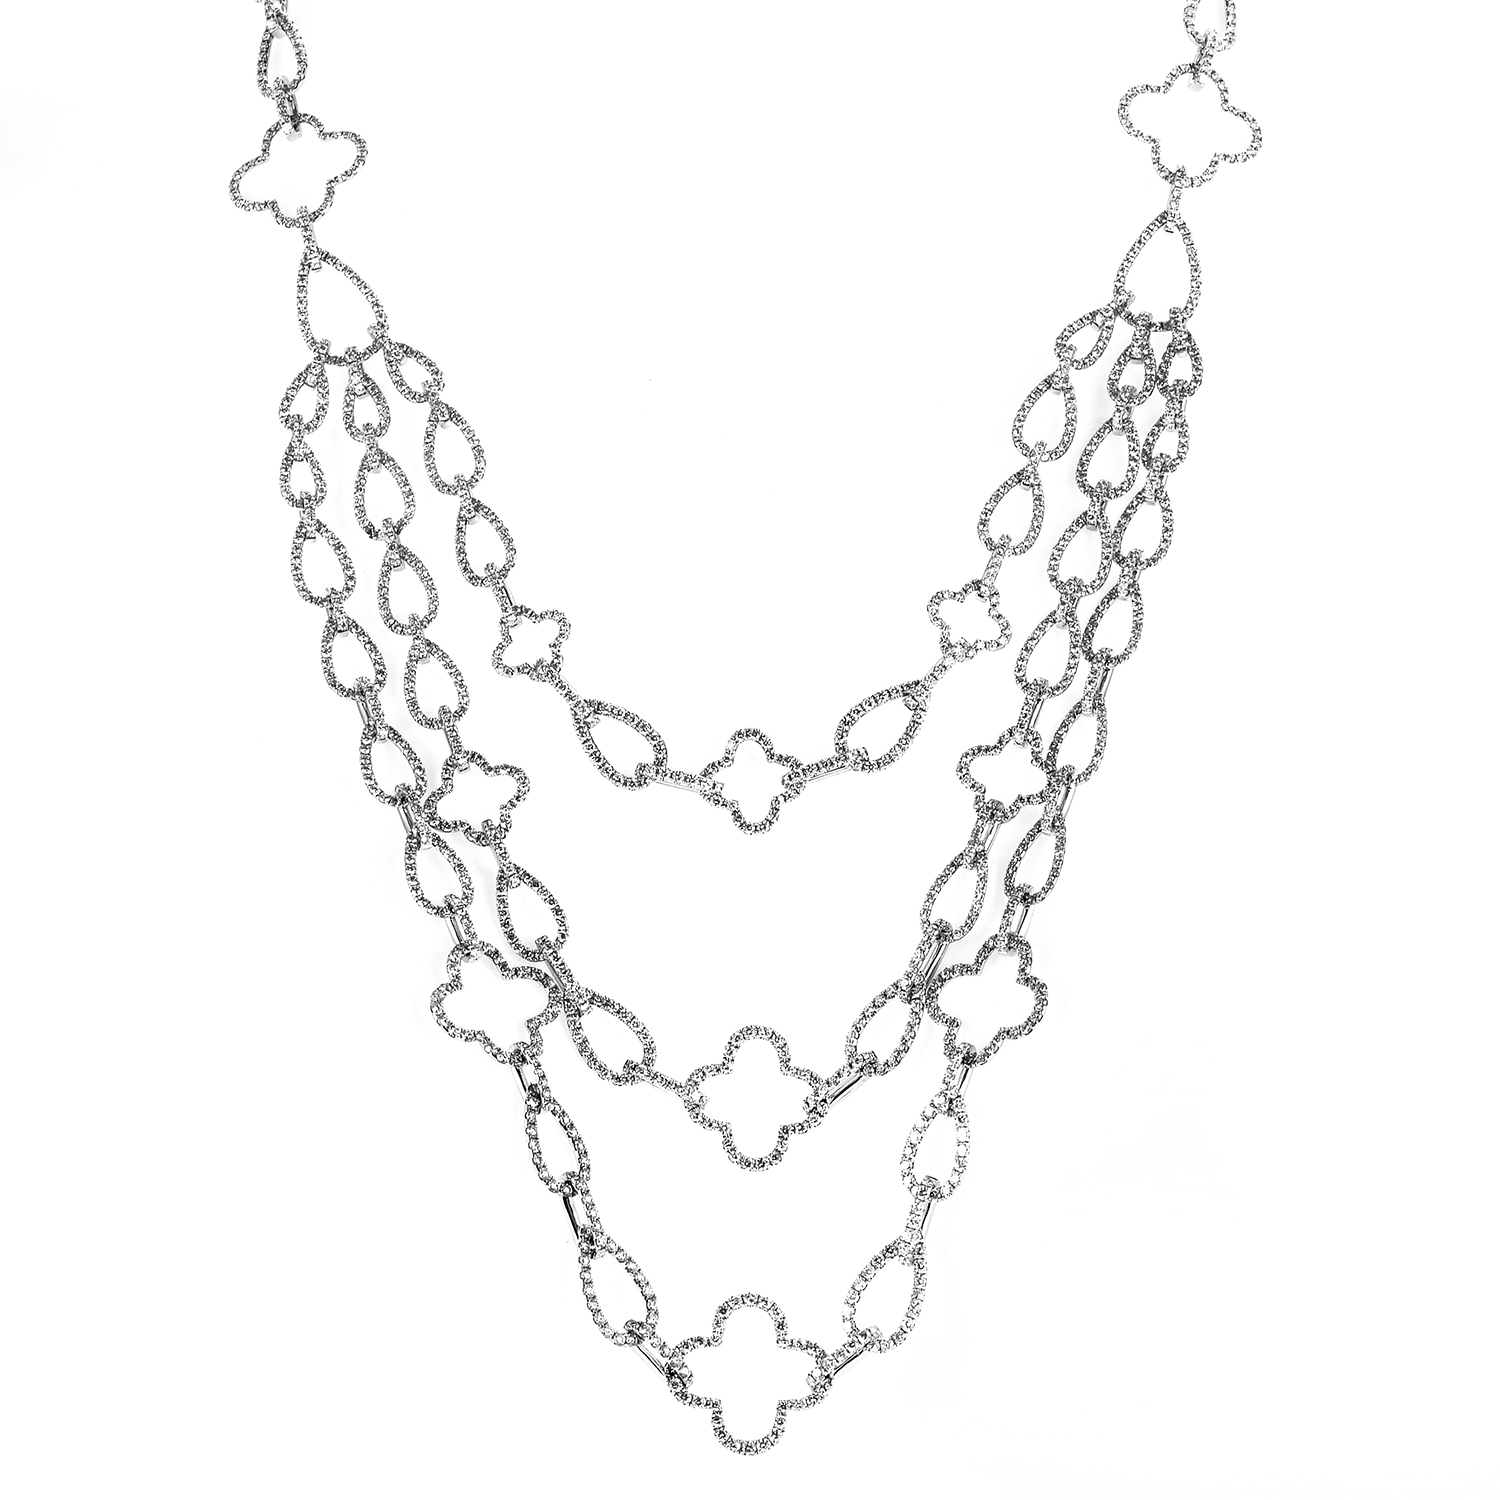 Women's 18K White Gold Full Diamond Pave Multi-Strand Necklace